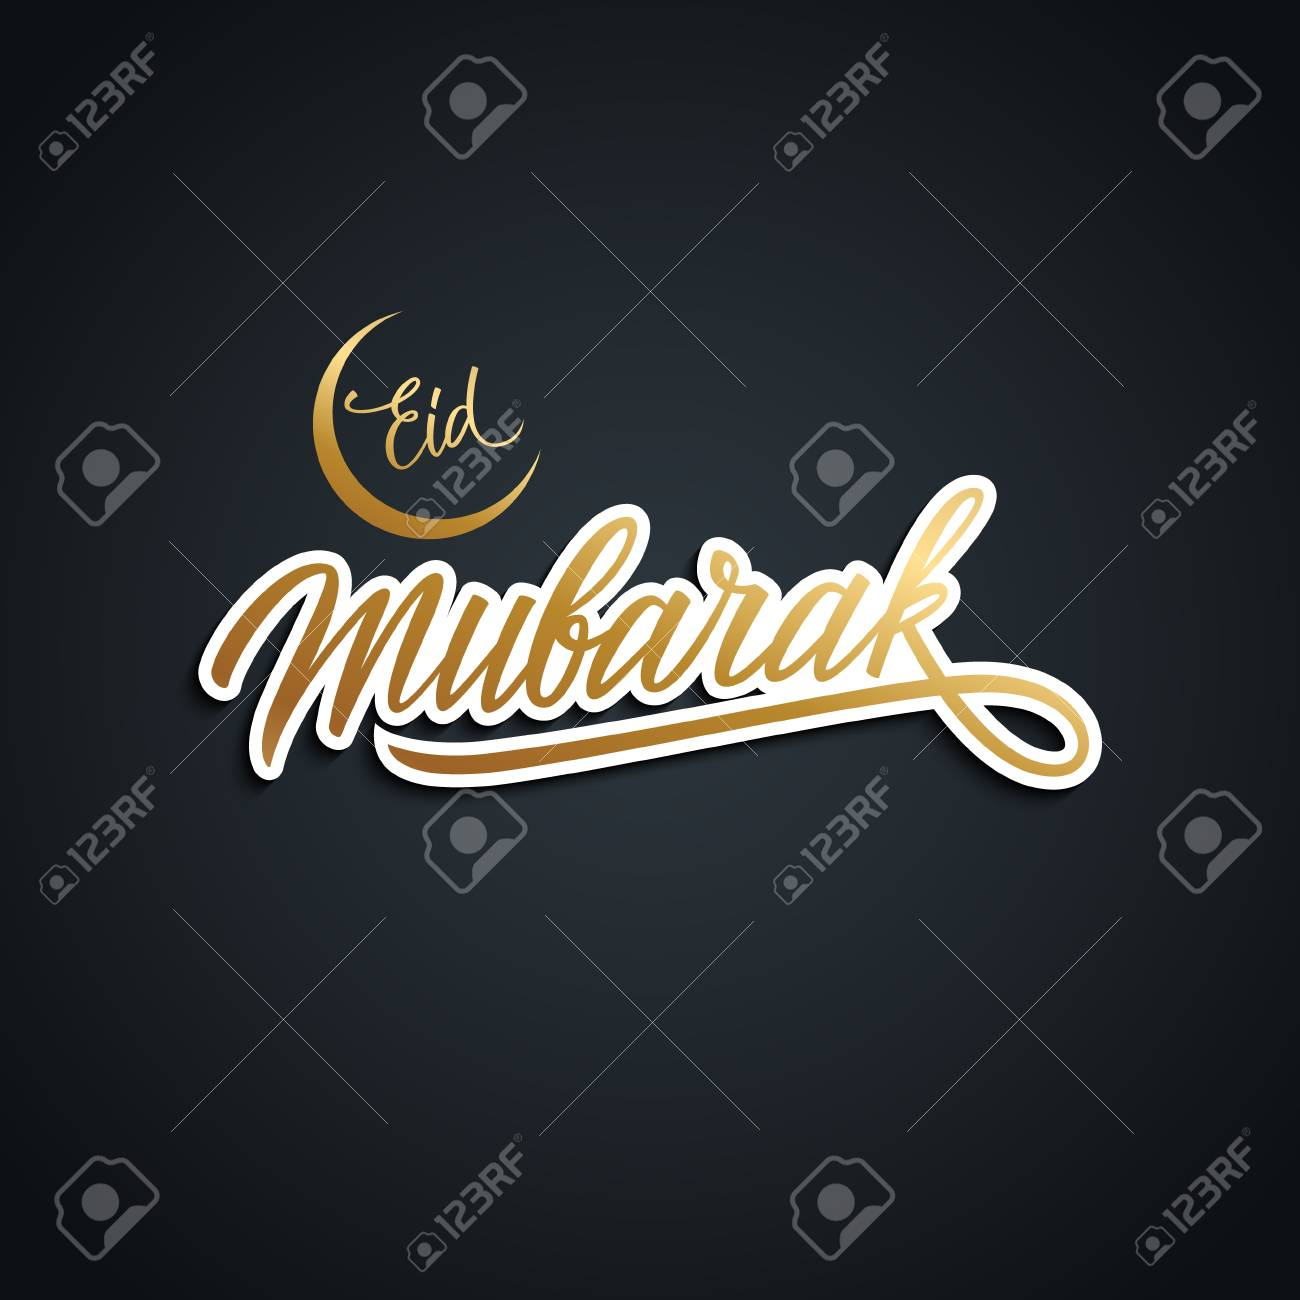 Eid mubarak greeting card with golden colored handwritten text eid mubarak greeting card with golden colored handwritten text design hand drawn lettering of muslim m4hsunfo